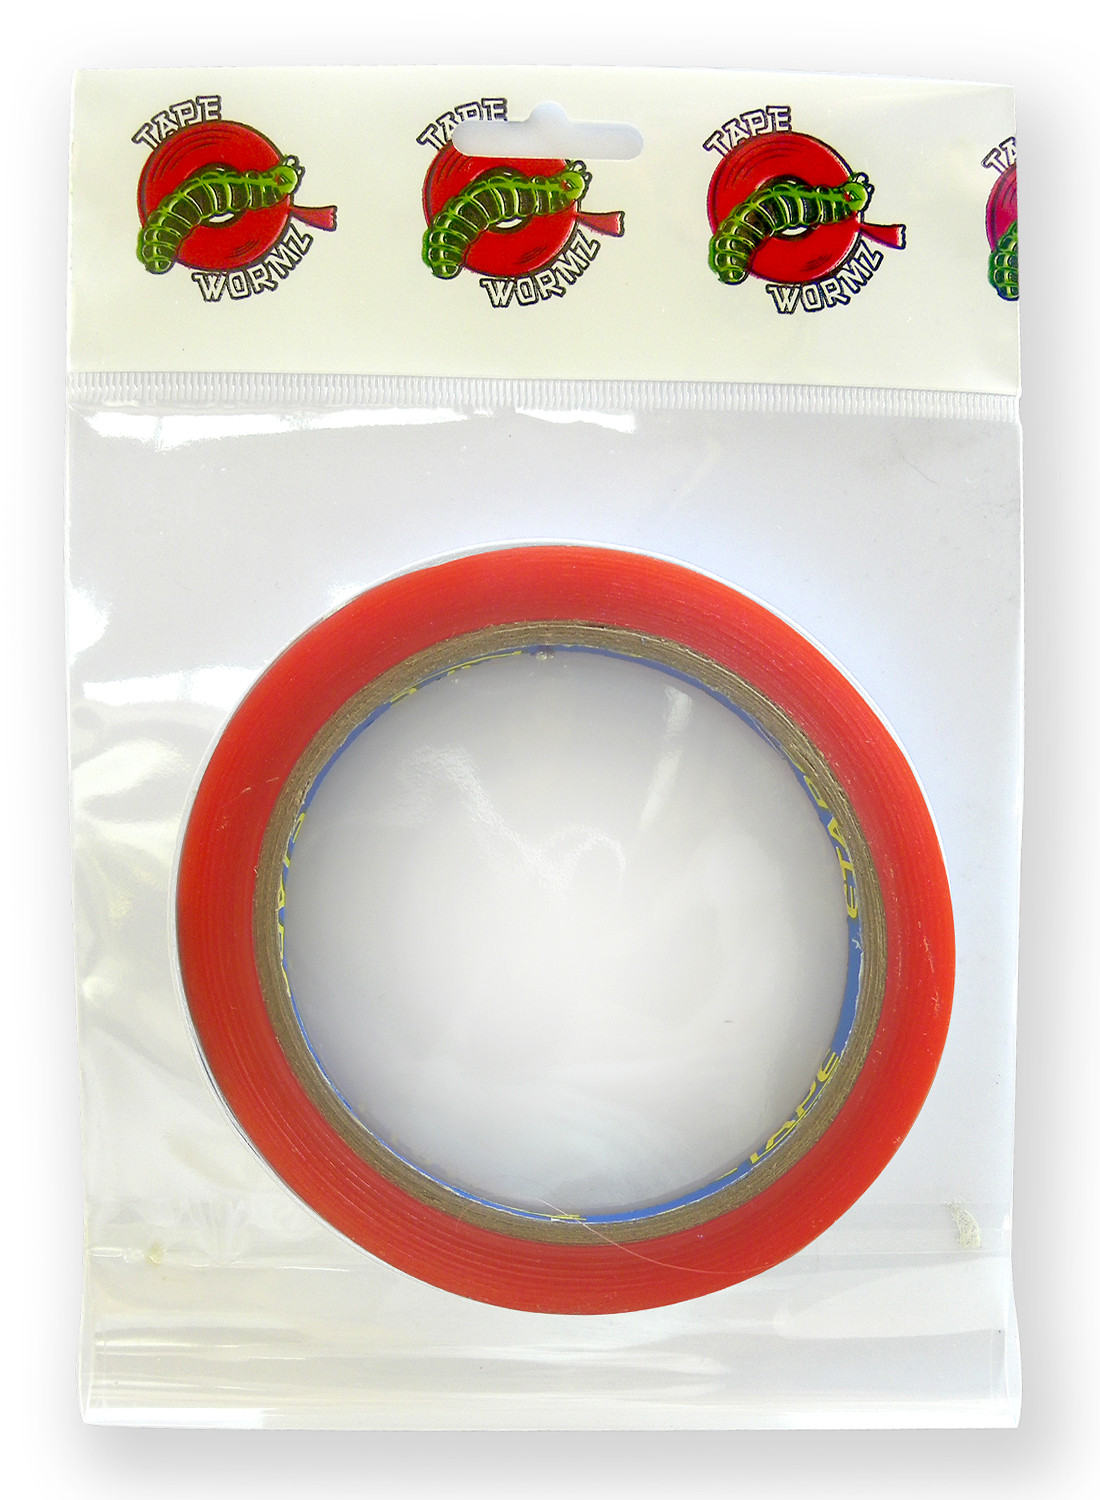 TWR018 - Tape Wormz Red Double Sided High Tack Tape - 12mm x 10m